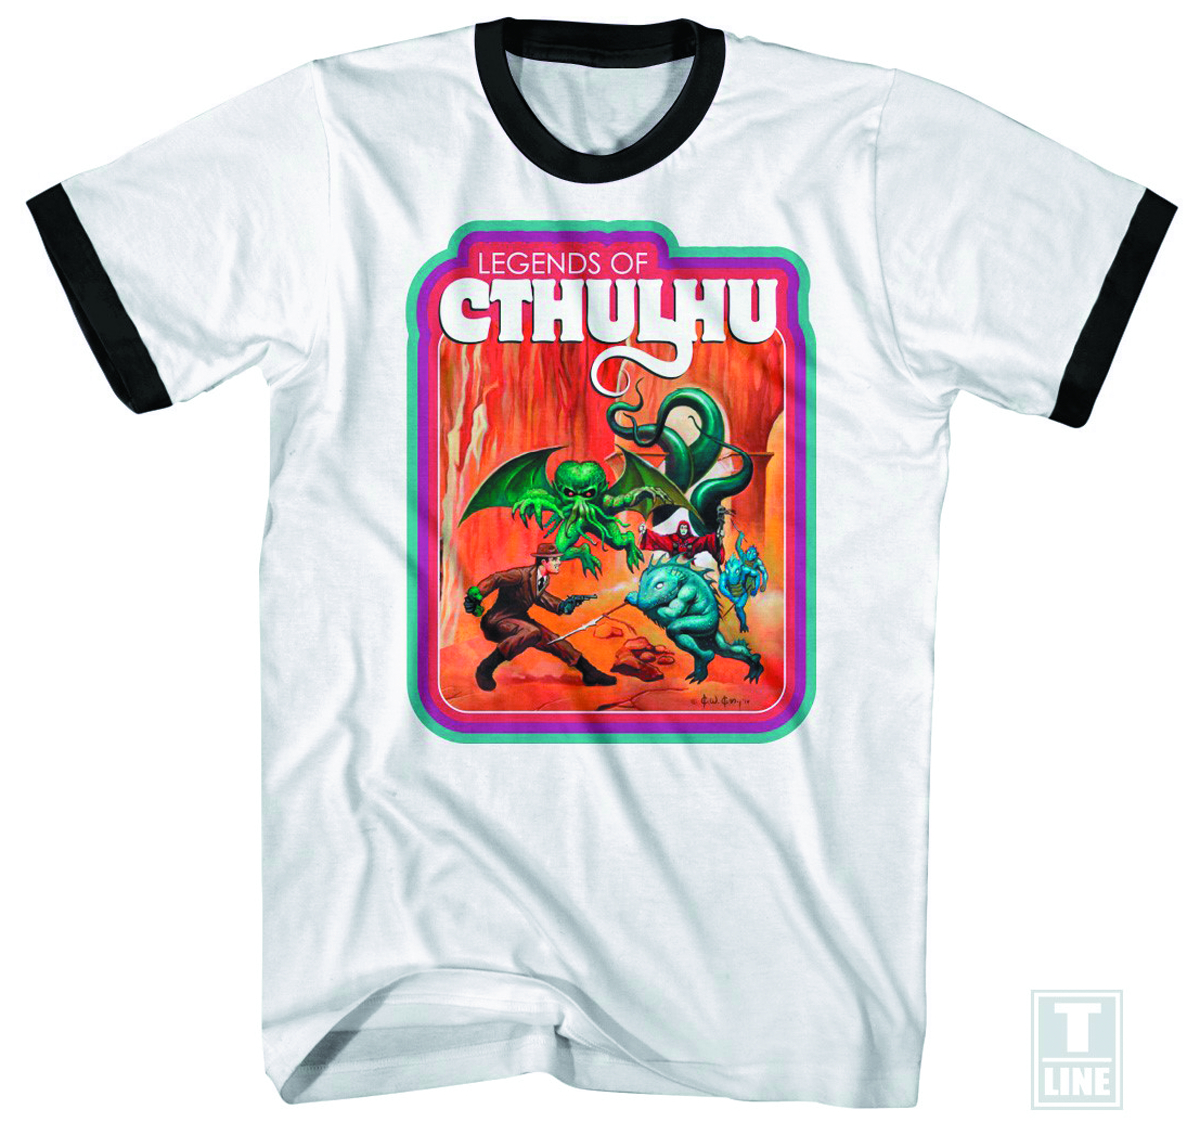 LEGENDS OF CTHULHU BATTLE WHT RINGER T/S XL